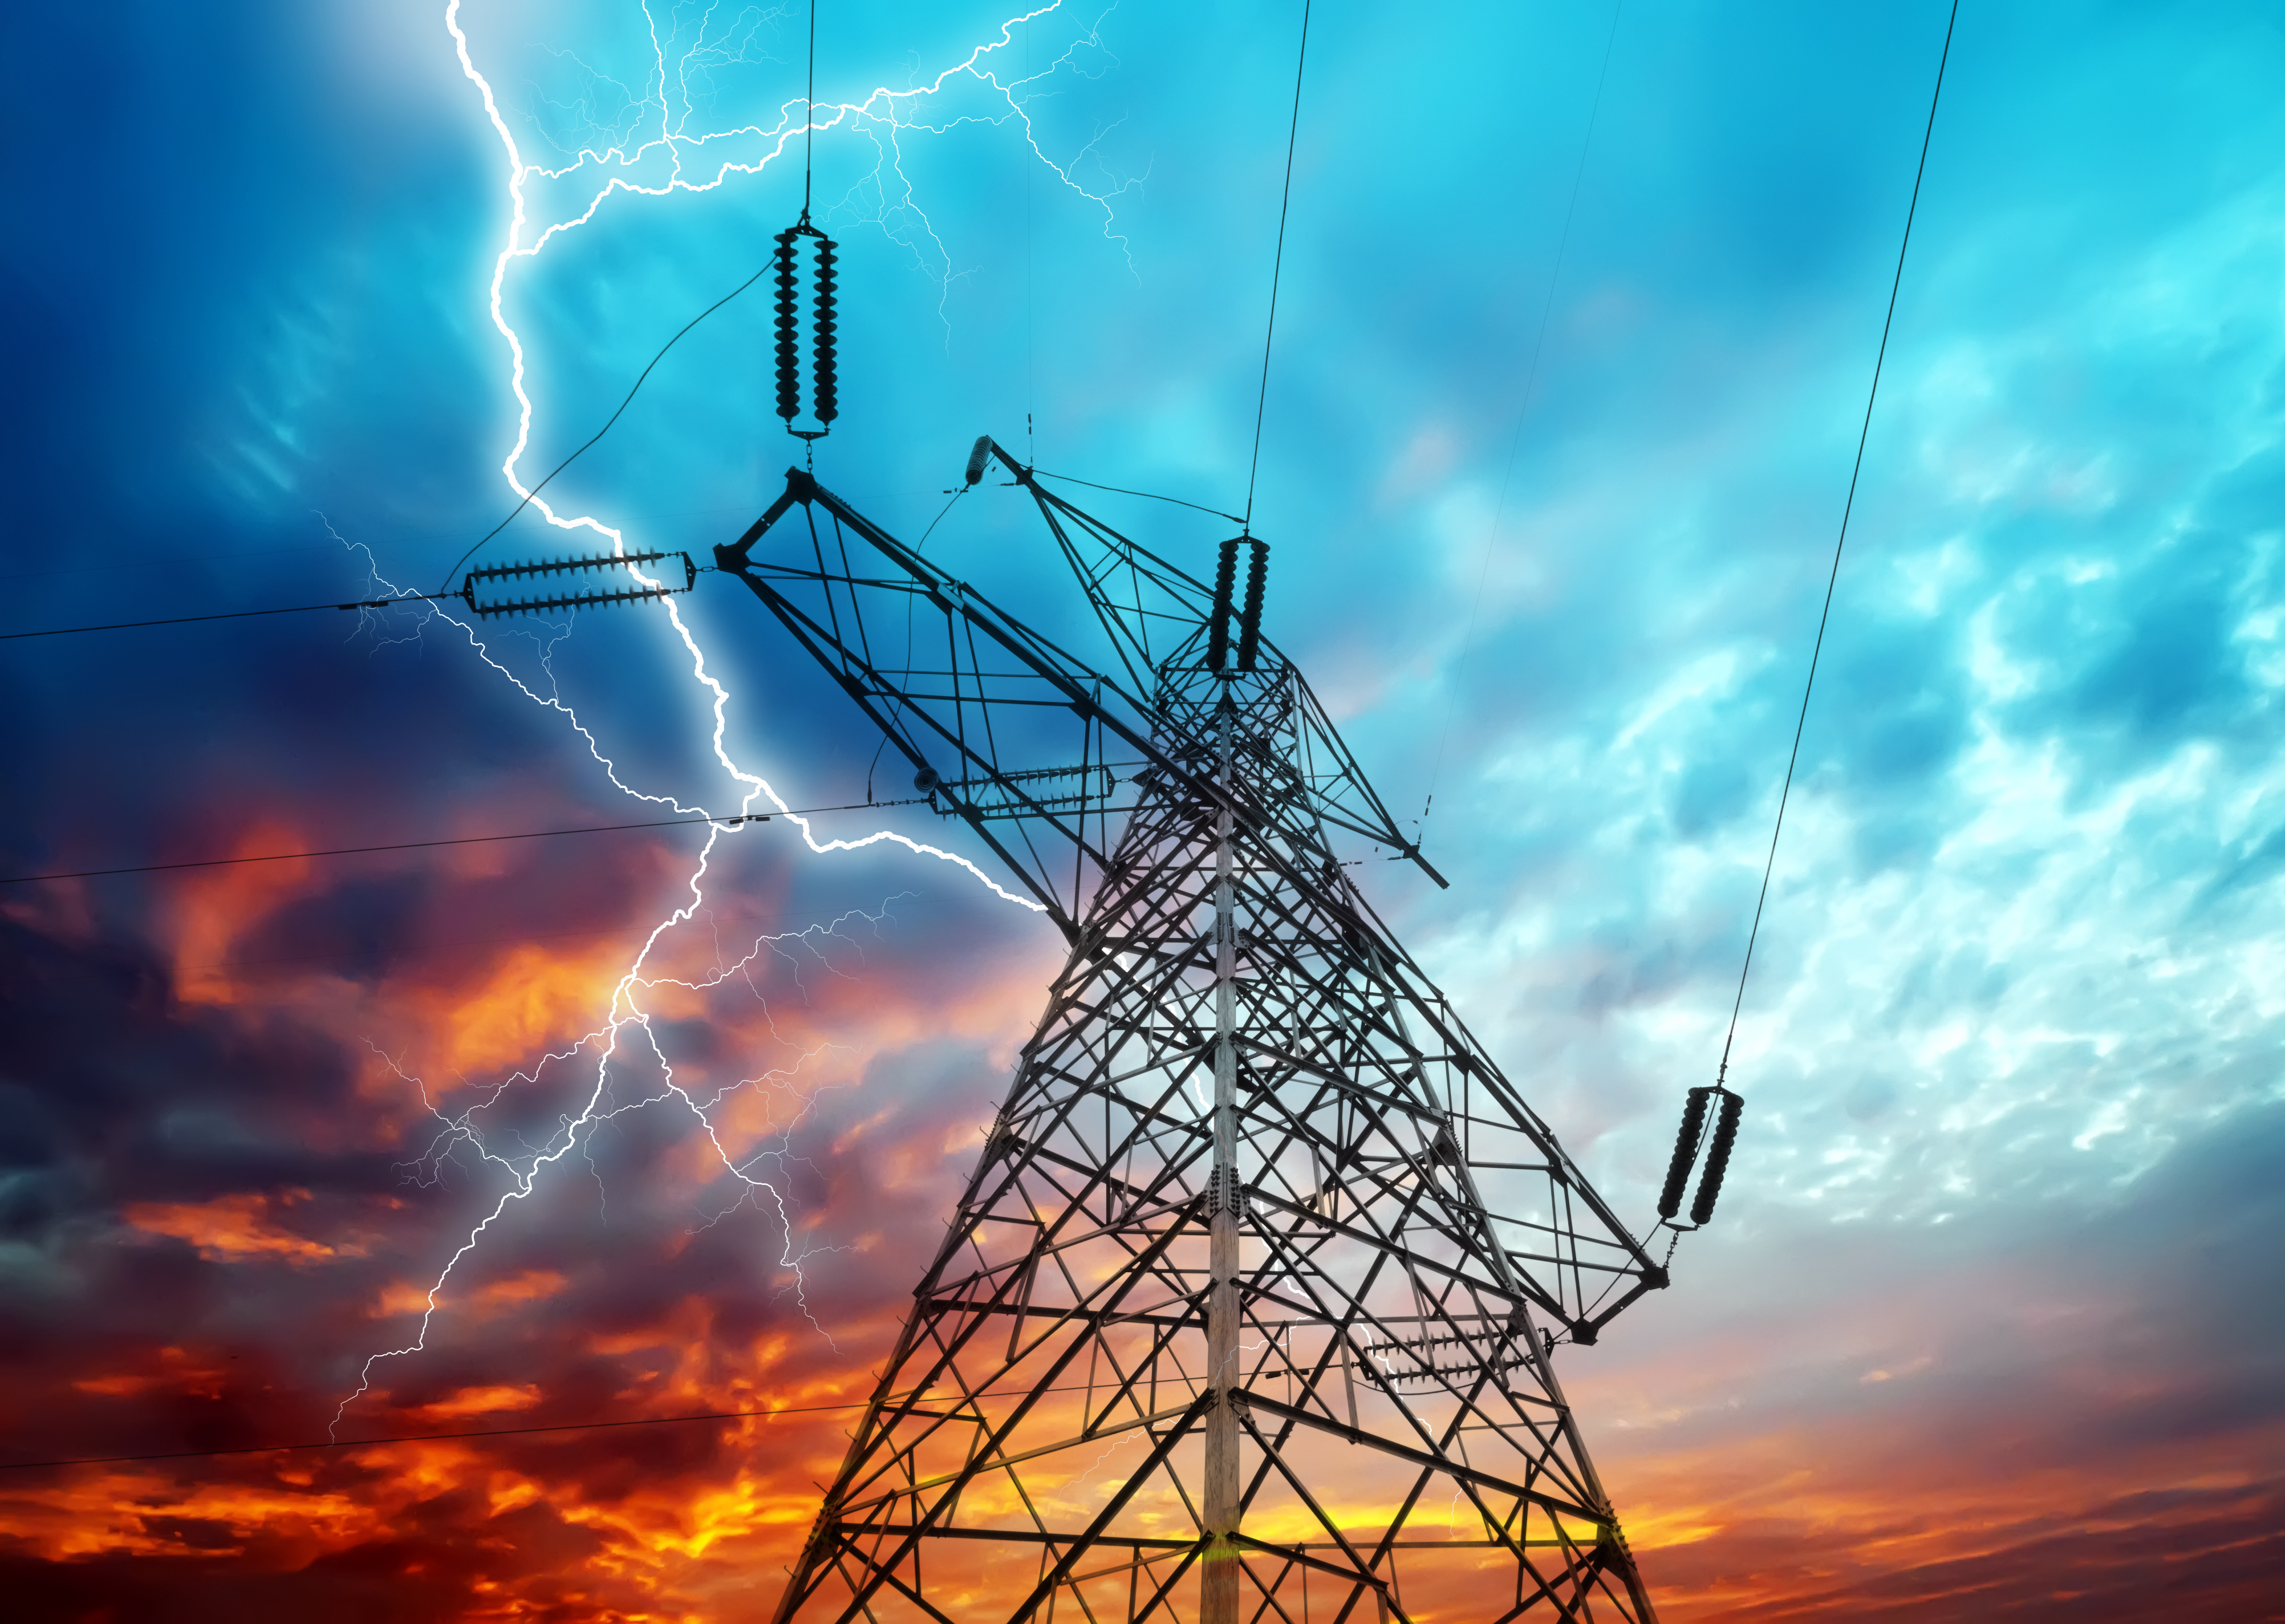 Dramatic Image of Power Distribution Station with Lightning Striking Electricity Towers